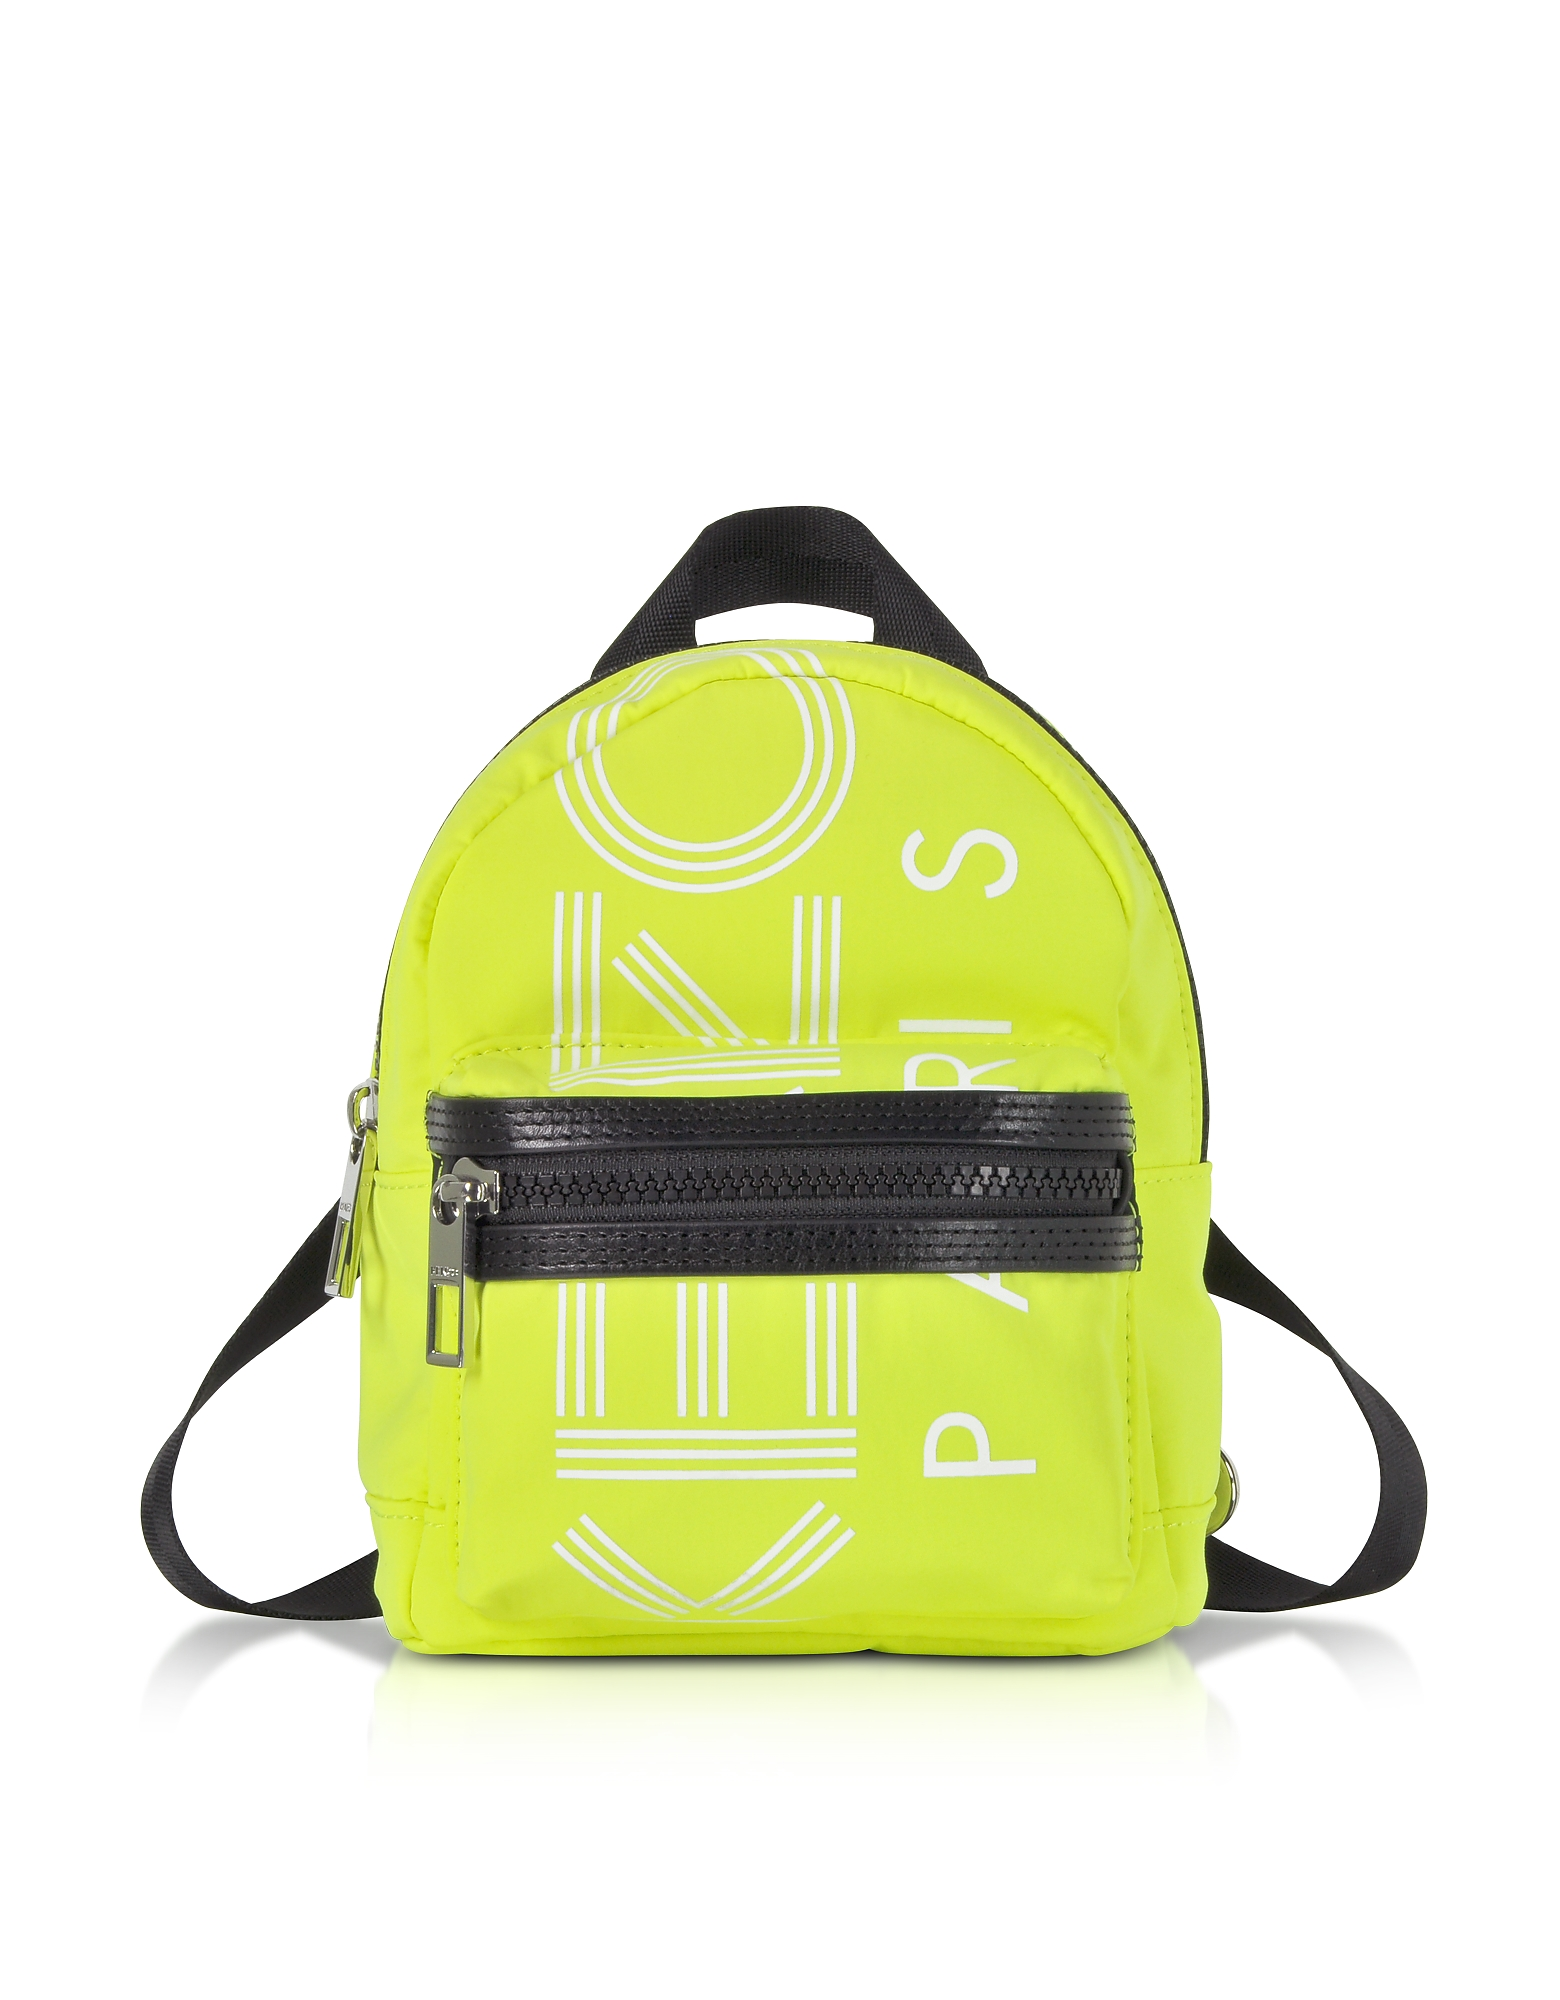 Kenzo Handbags, Kenzo Sport Mini Logo Backpack